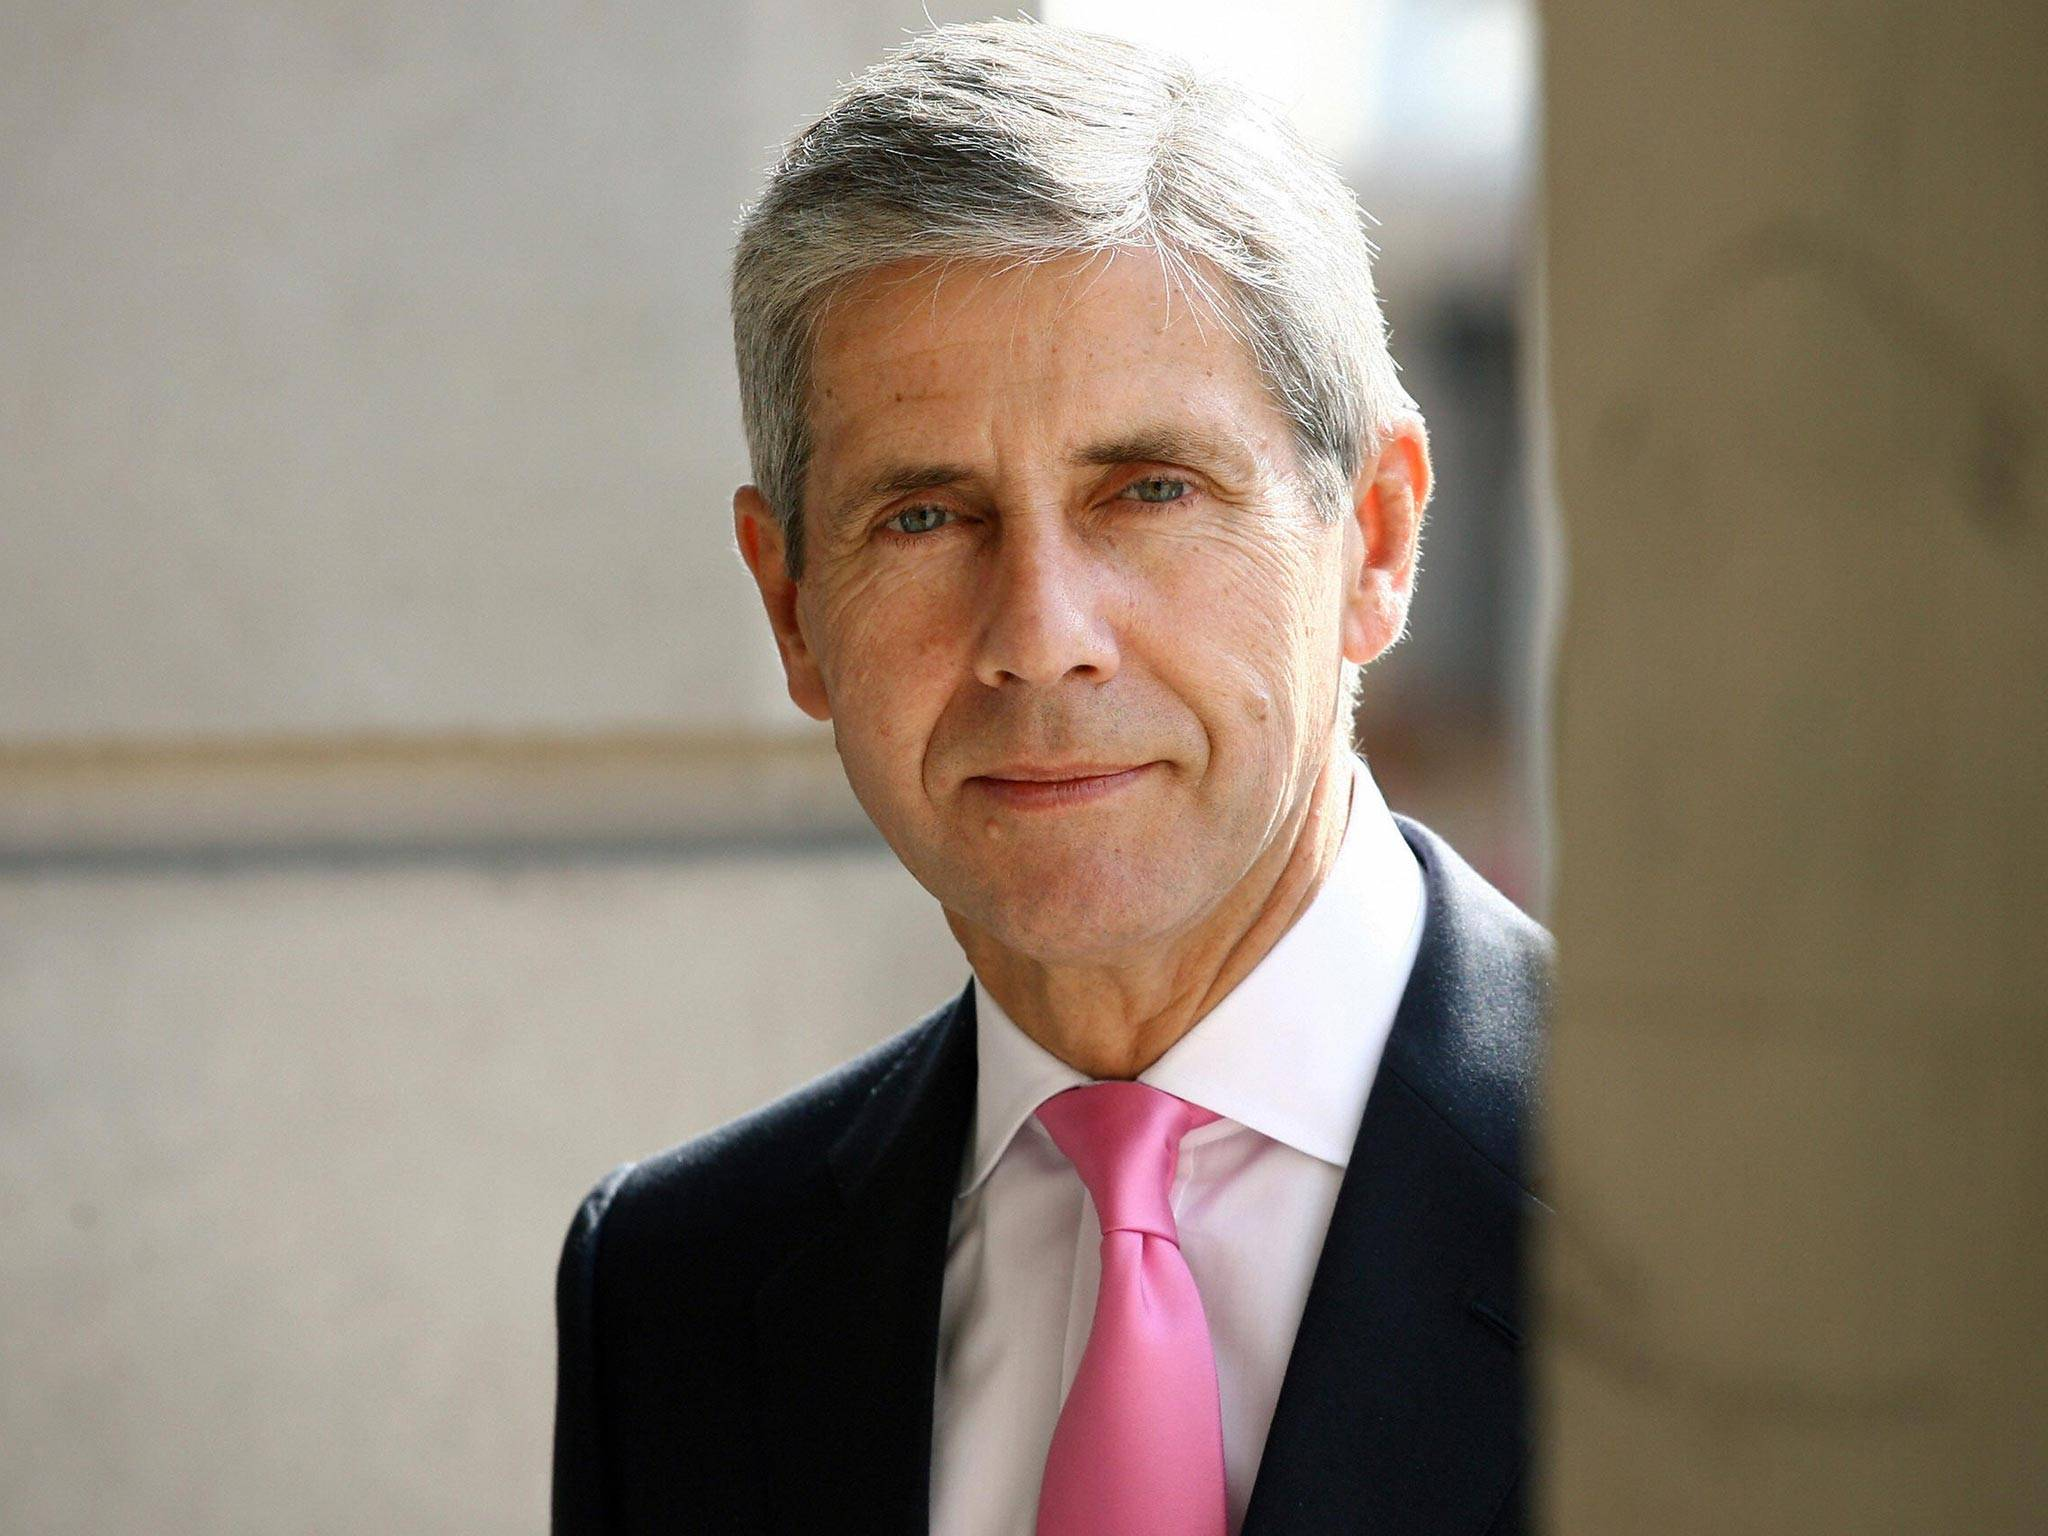 Stuart Rose says politicians should listen to business leaders, talks on Ocado's plans for US growth and why he is hunting the next chicken Kiev - THE TELEGRAPH